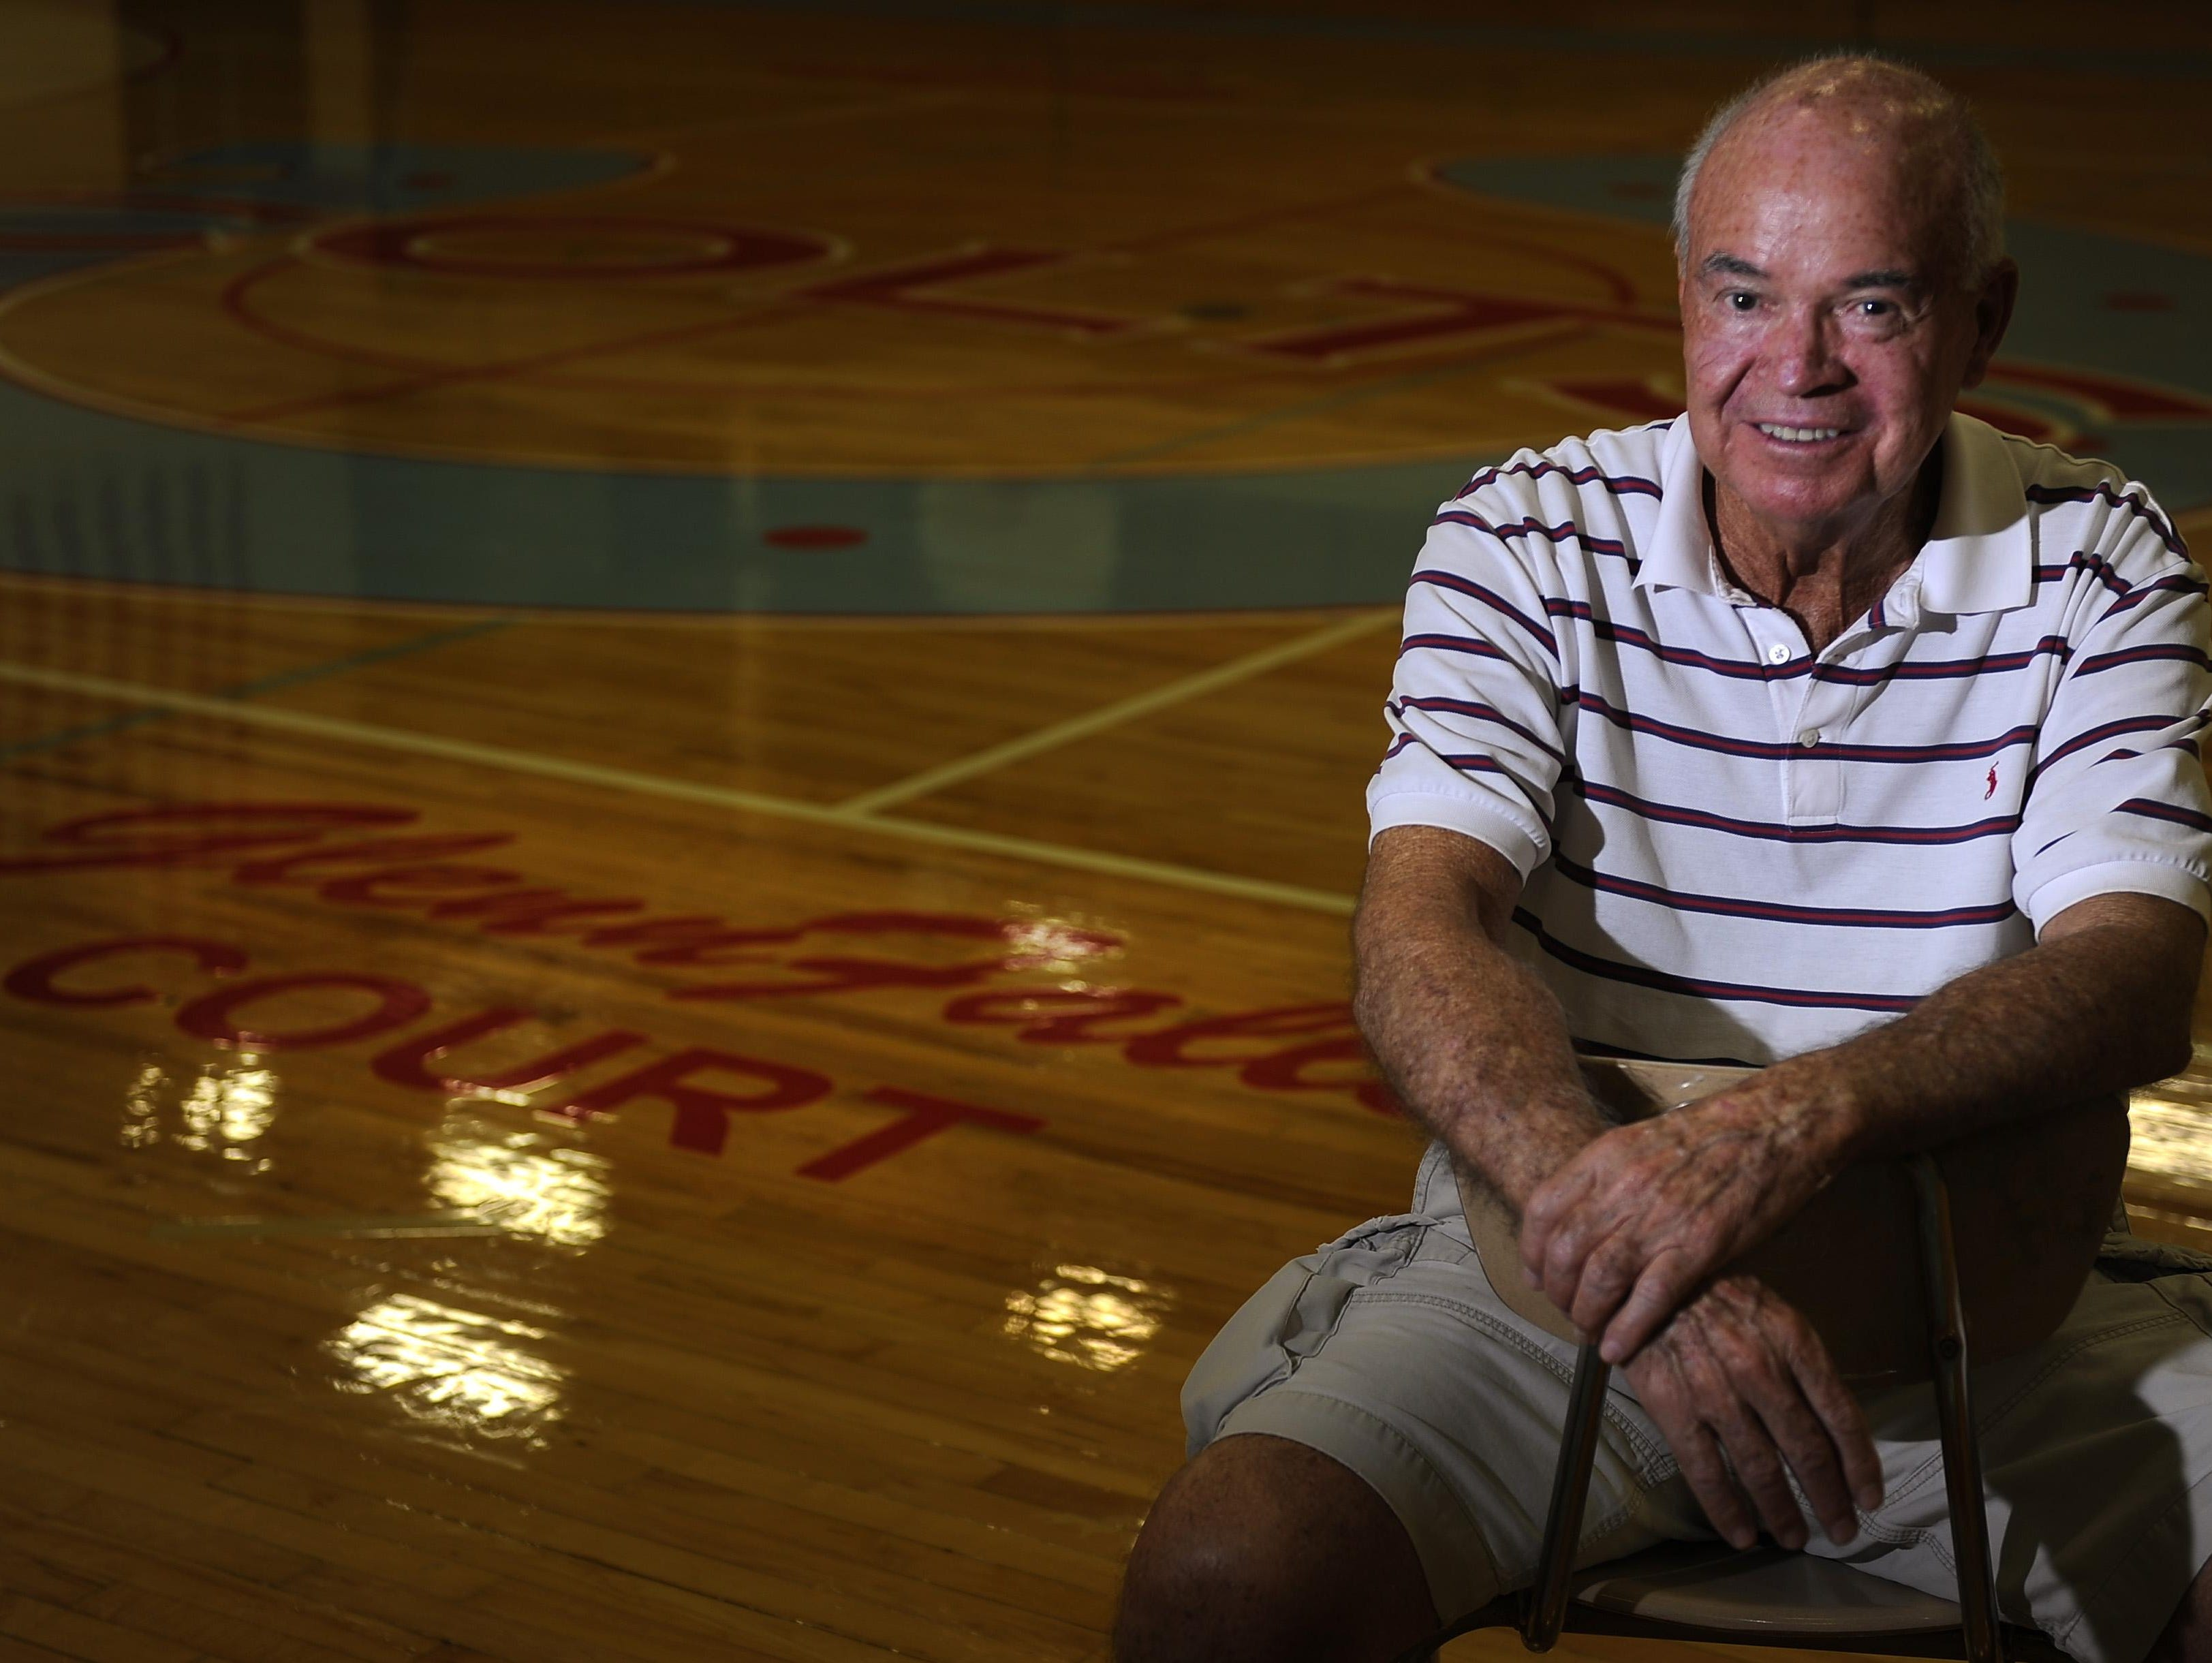 Glenn Falls has been coaching in Metro since 1961. In 2013, Glencliff named its basketball court after him.